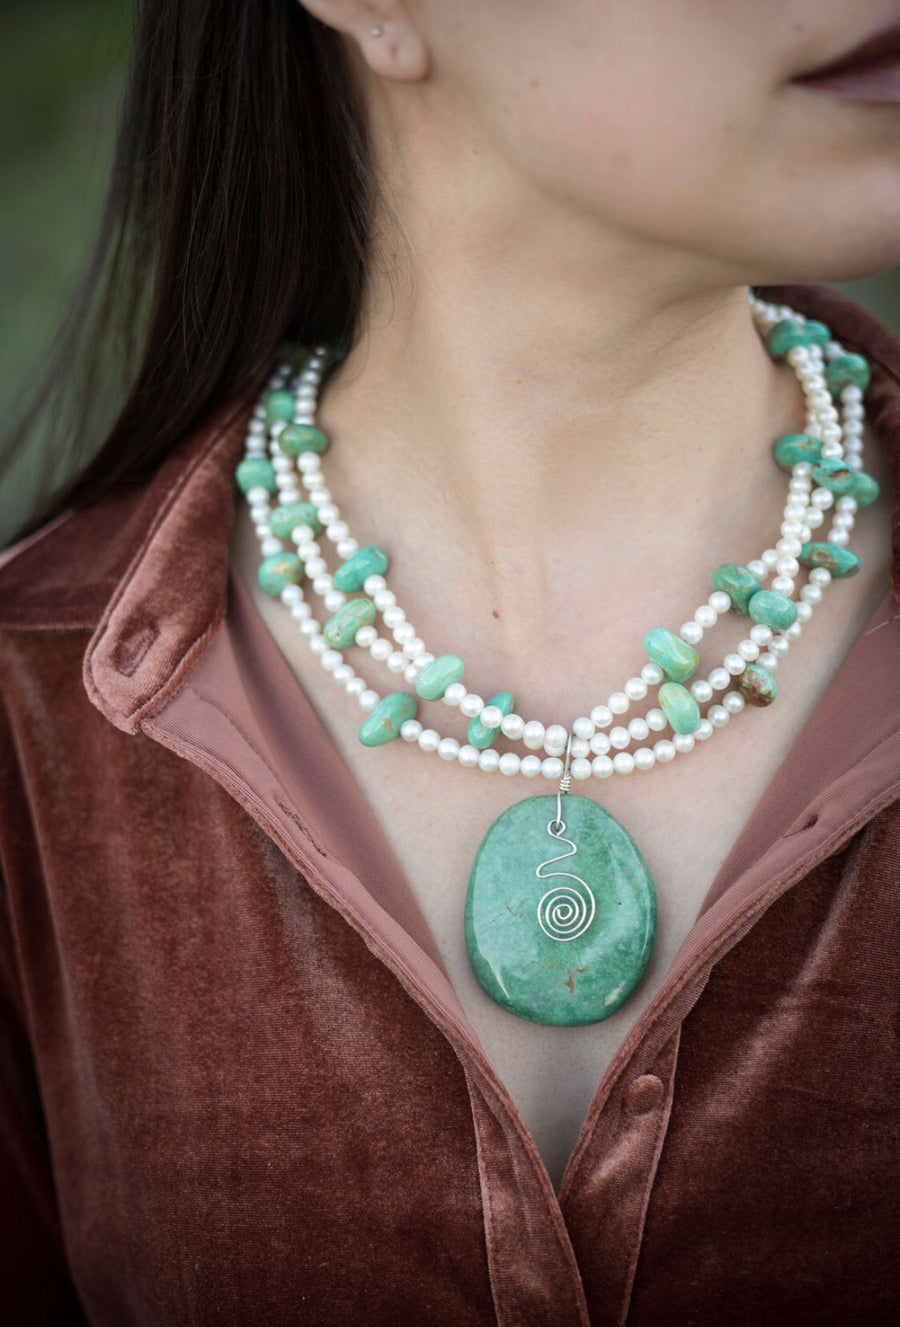 Freshwater Pearls and Turquoise Necklace